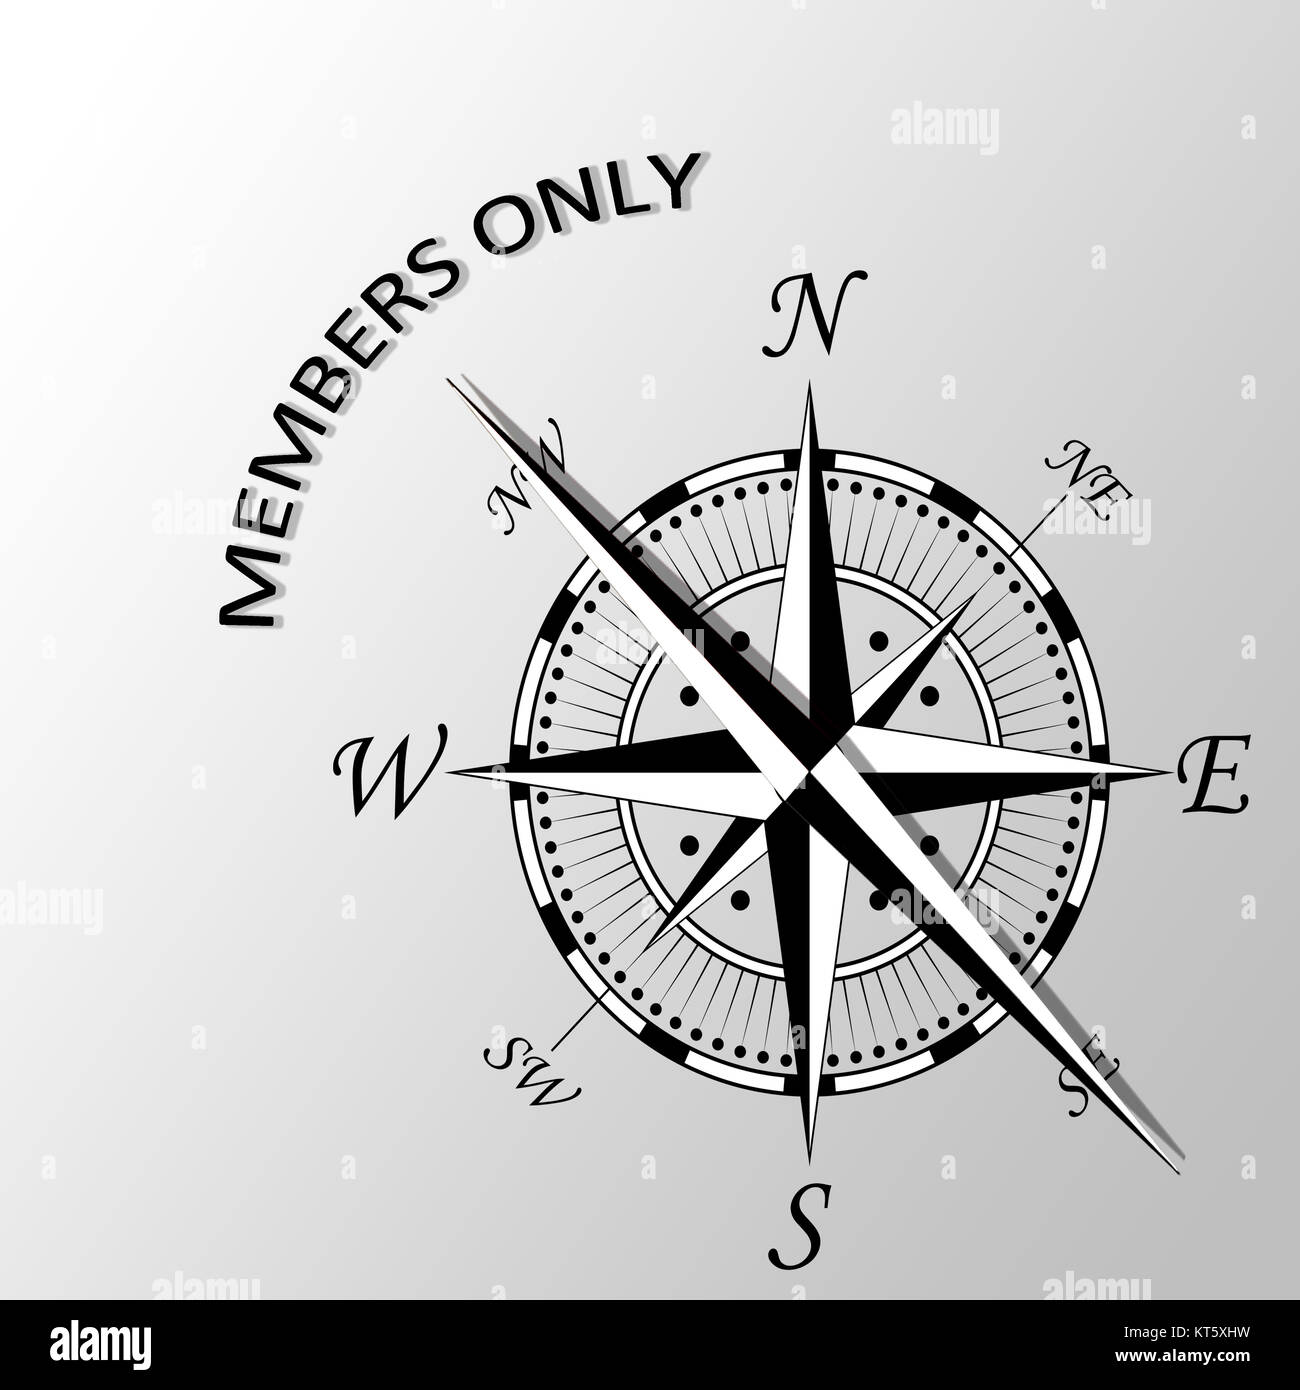 Illustration of Members only written aside compass - Stock Image